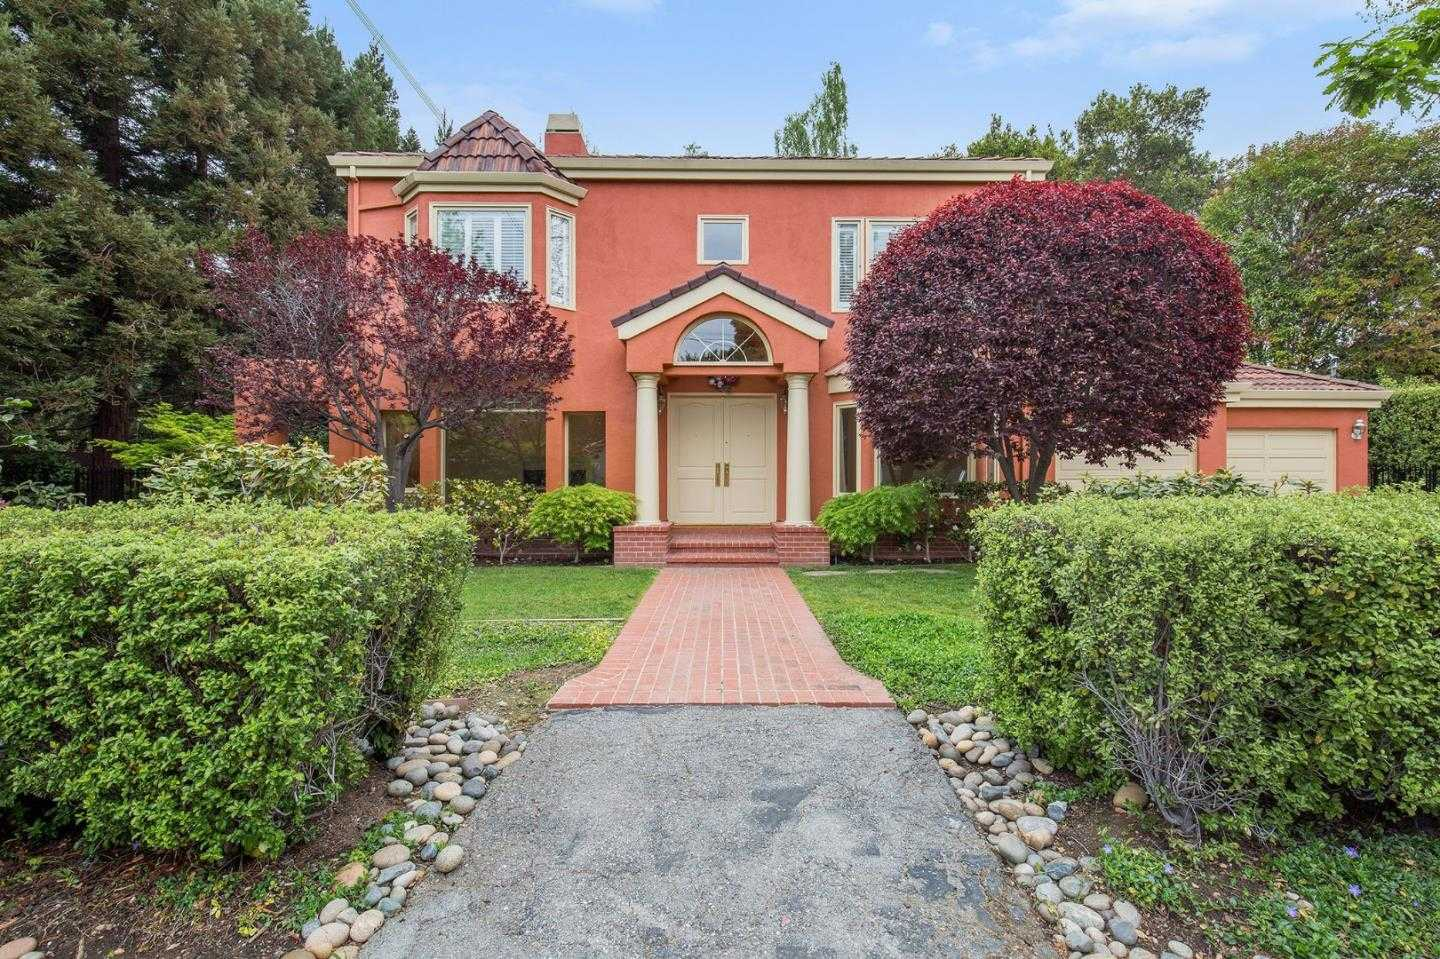 $3,350,000 - 4Br/3Ba -  for Sale in Menlo Park